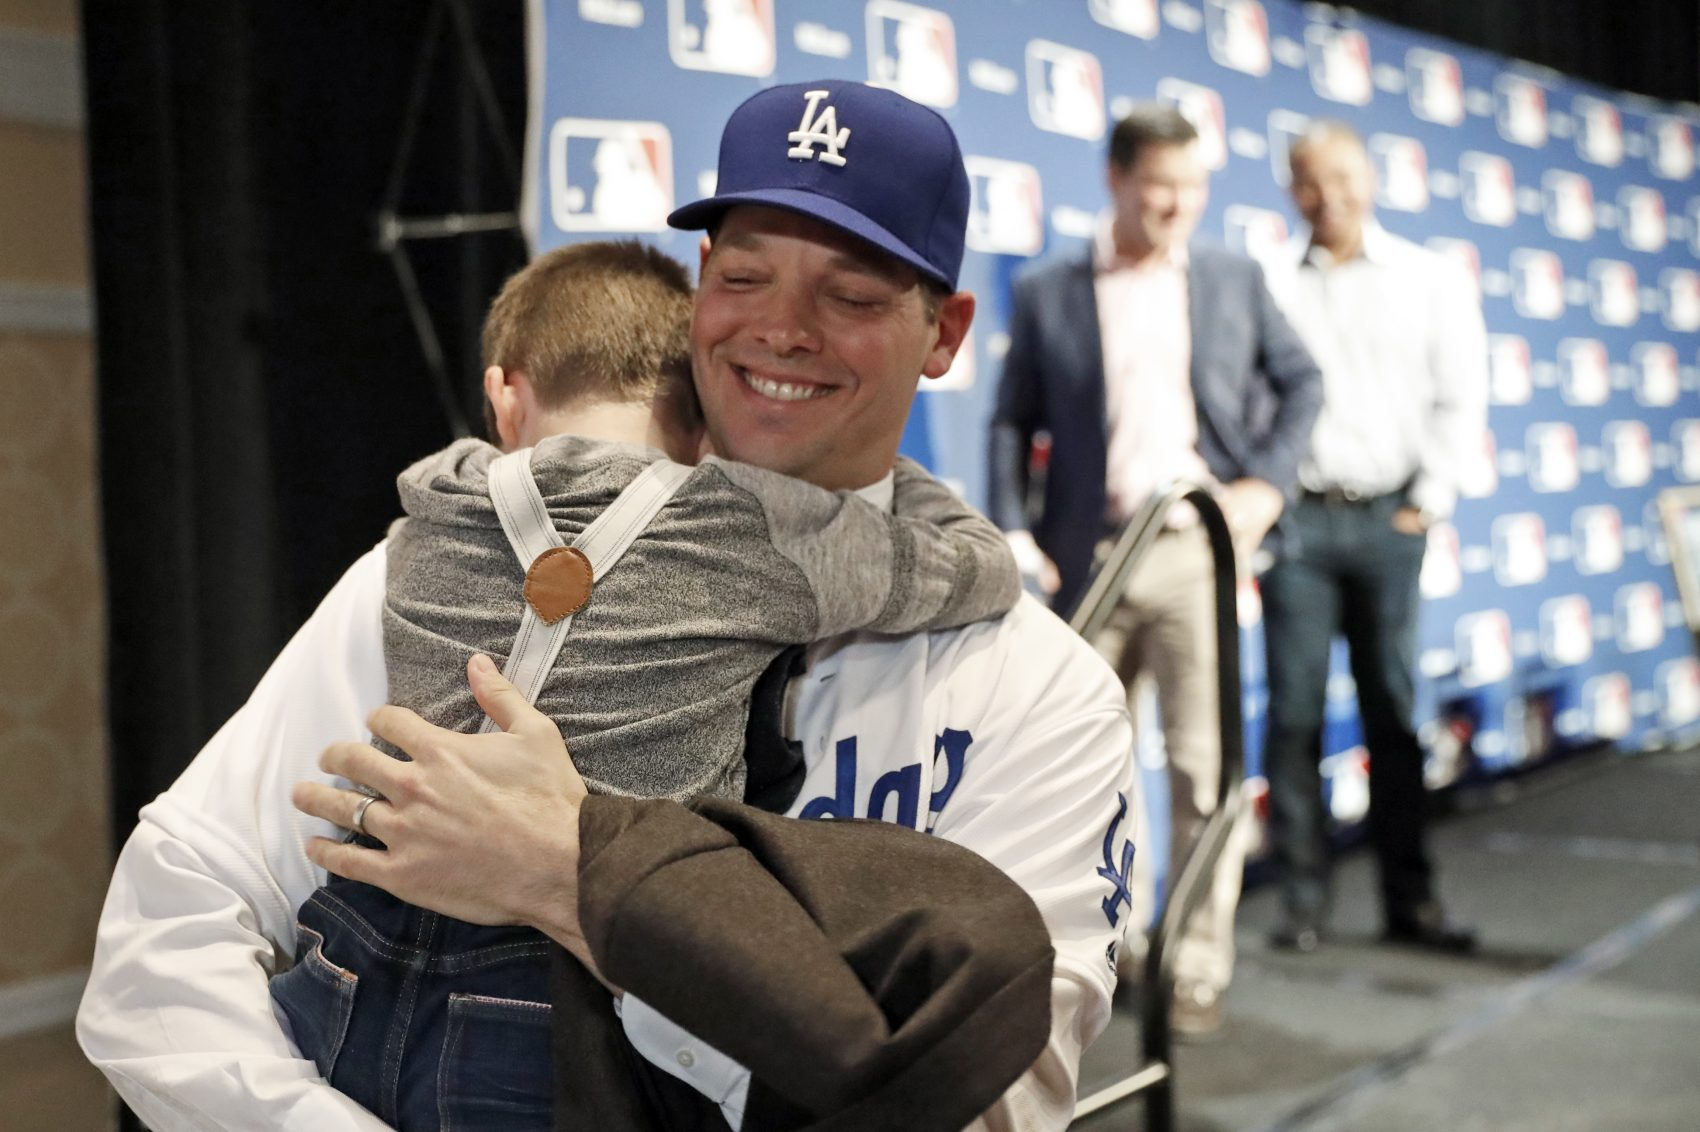 Los Angeles Dodgers pitcher Rich Hill hugs his son Brice Hill after signing a 3-year, $48 million contract on Dec. 5. (Alex Brandon/AP)